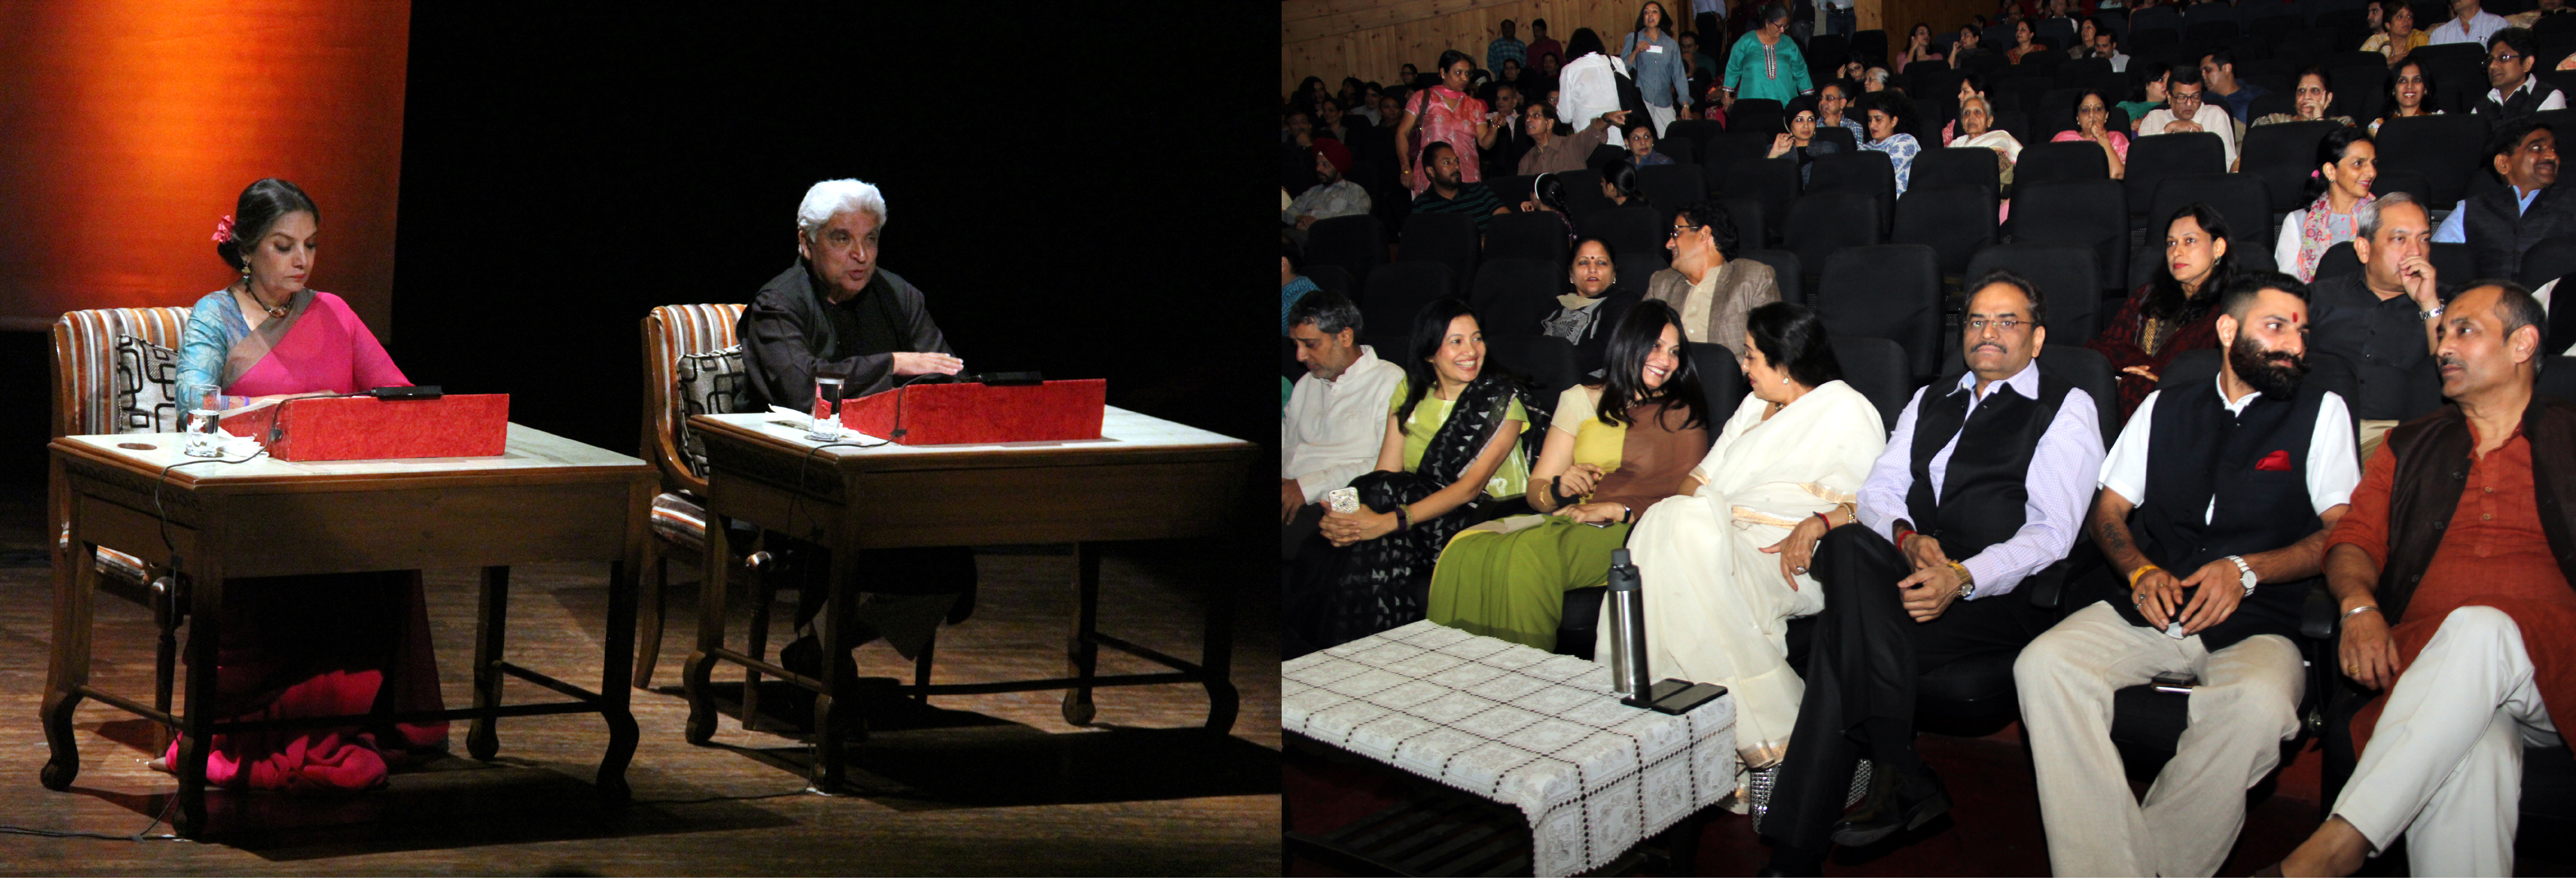 Smt. Kirron Kher, Member of Parliament, Chandigarh, alongwith senior officers Chandigarh Administration witnessing Kaifi aur Main a poets romantic saga at Tagore Theatre, Sector-18, Chandigarh on Sunday, October 23, 2016.